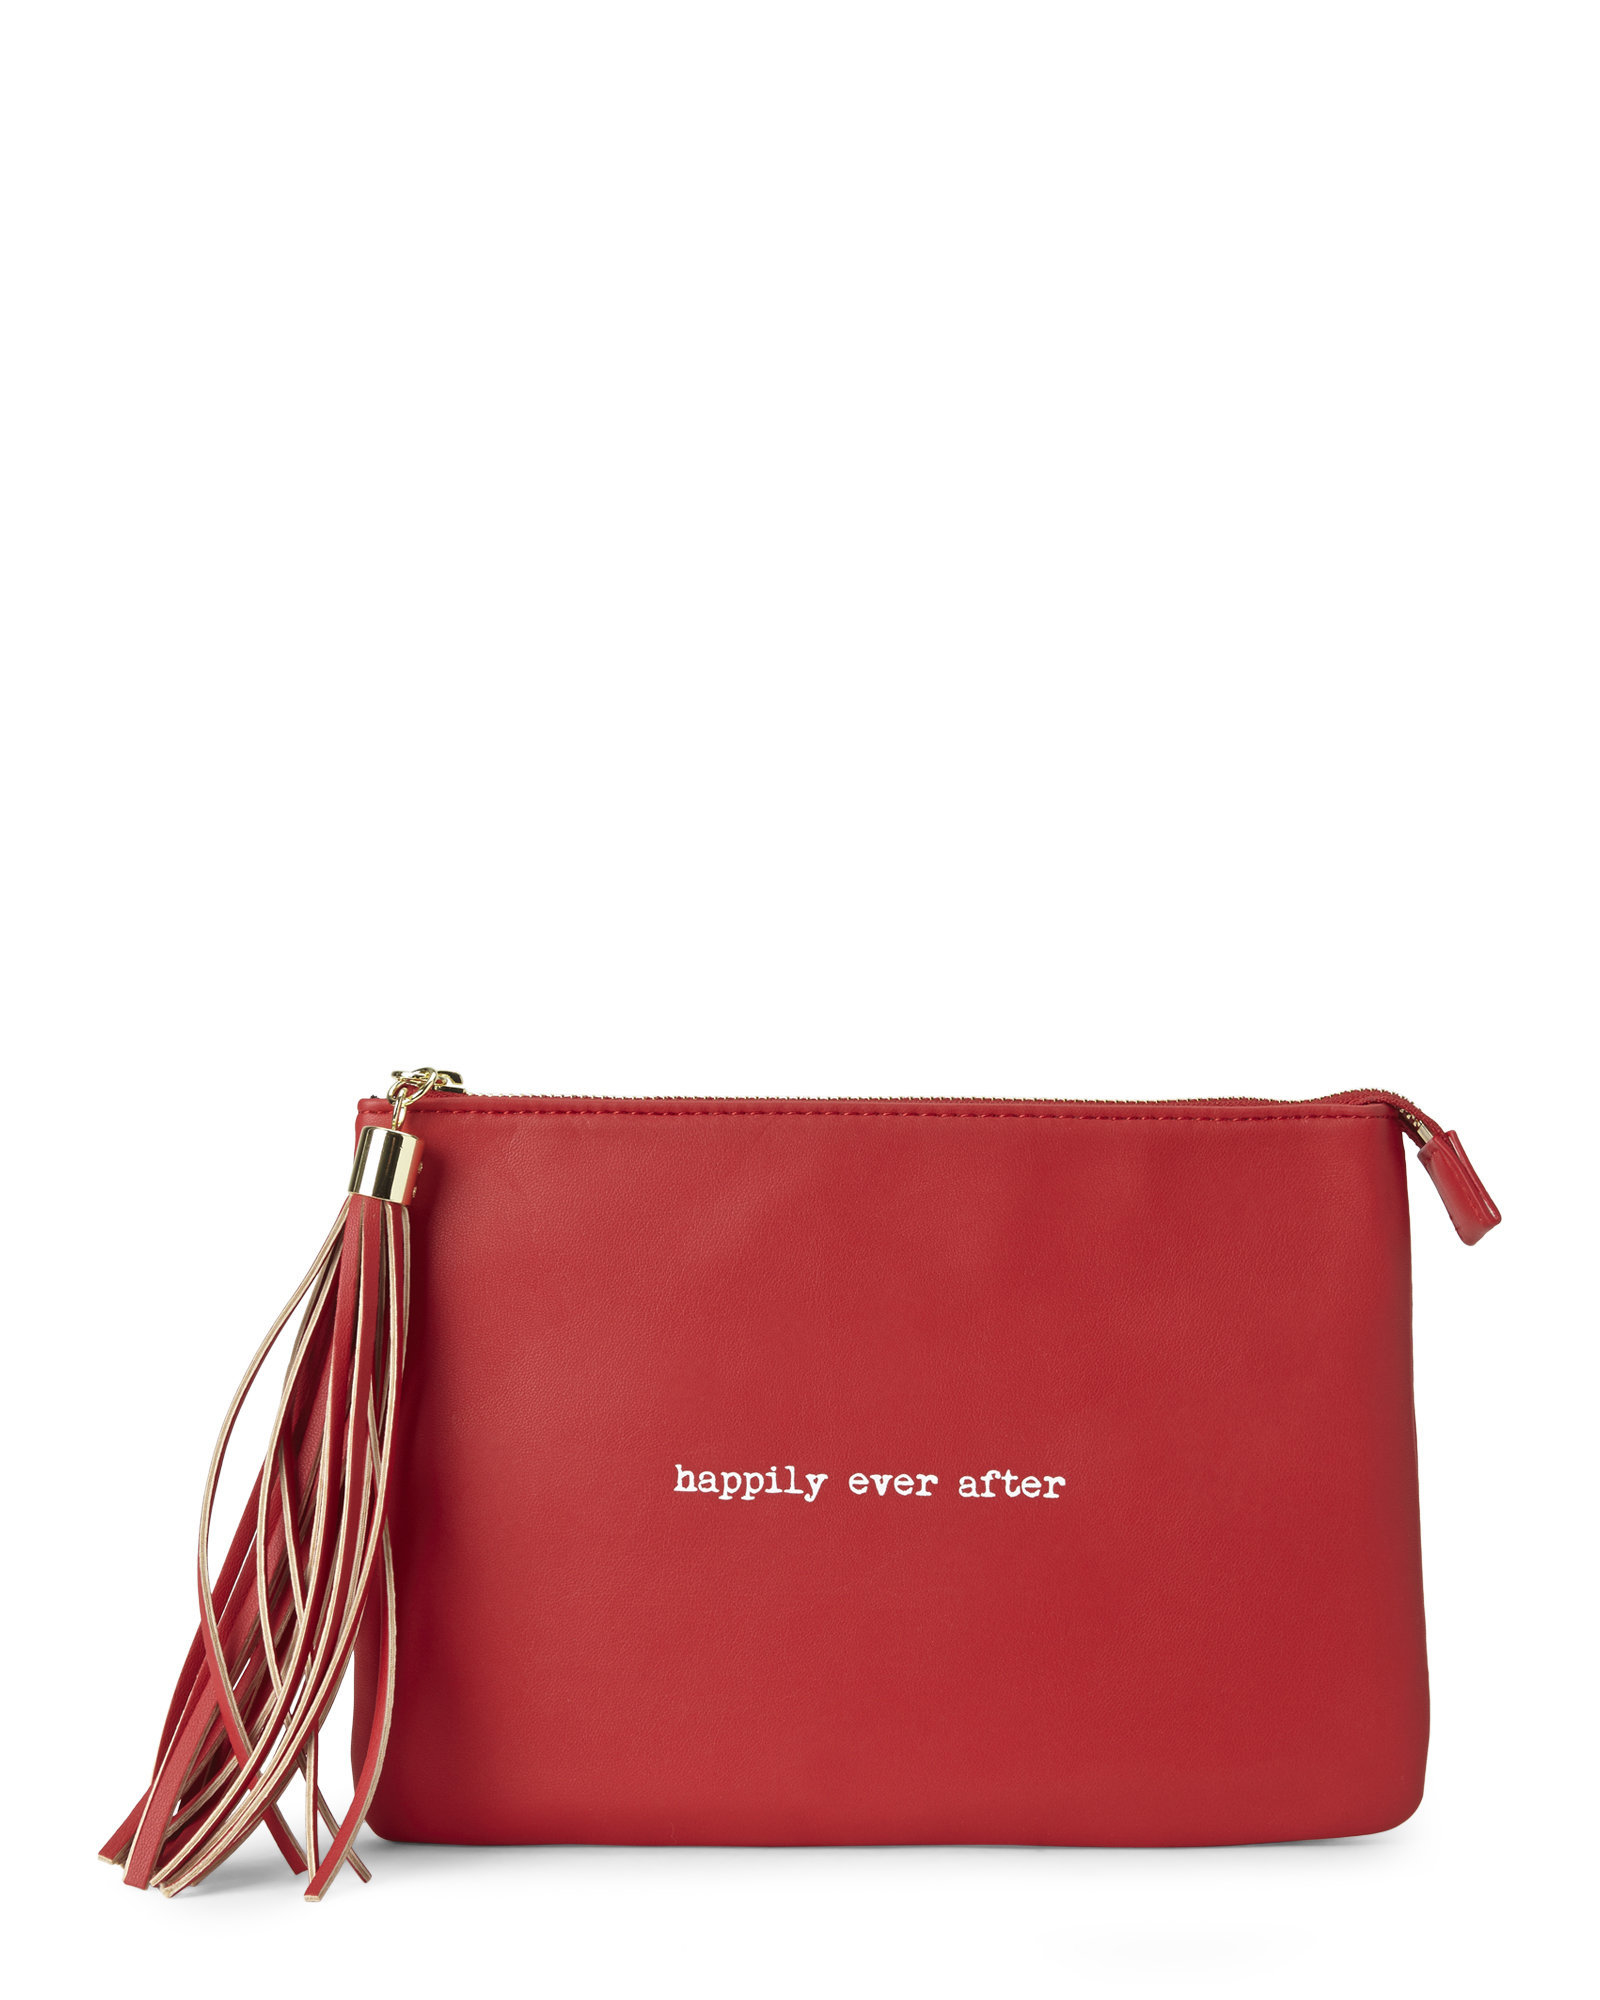 Lyst Olivia Joy Lipstick Red Hily Ever After Josephine Clutch